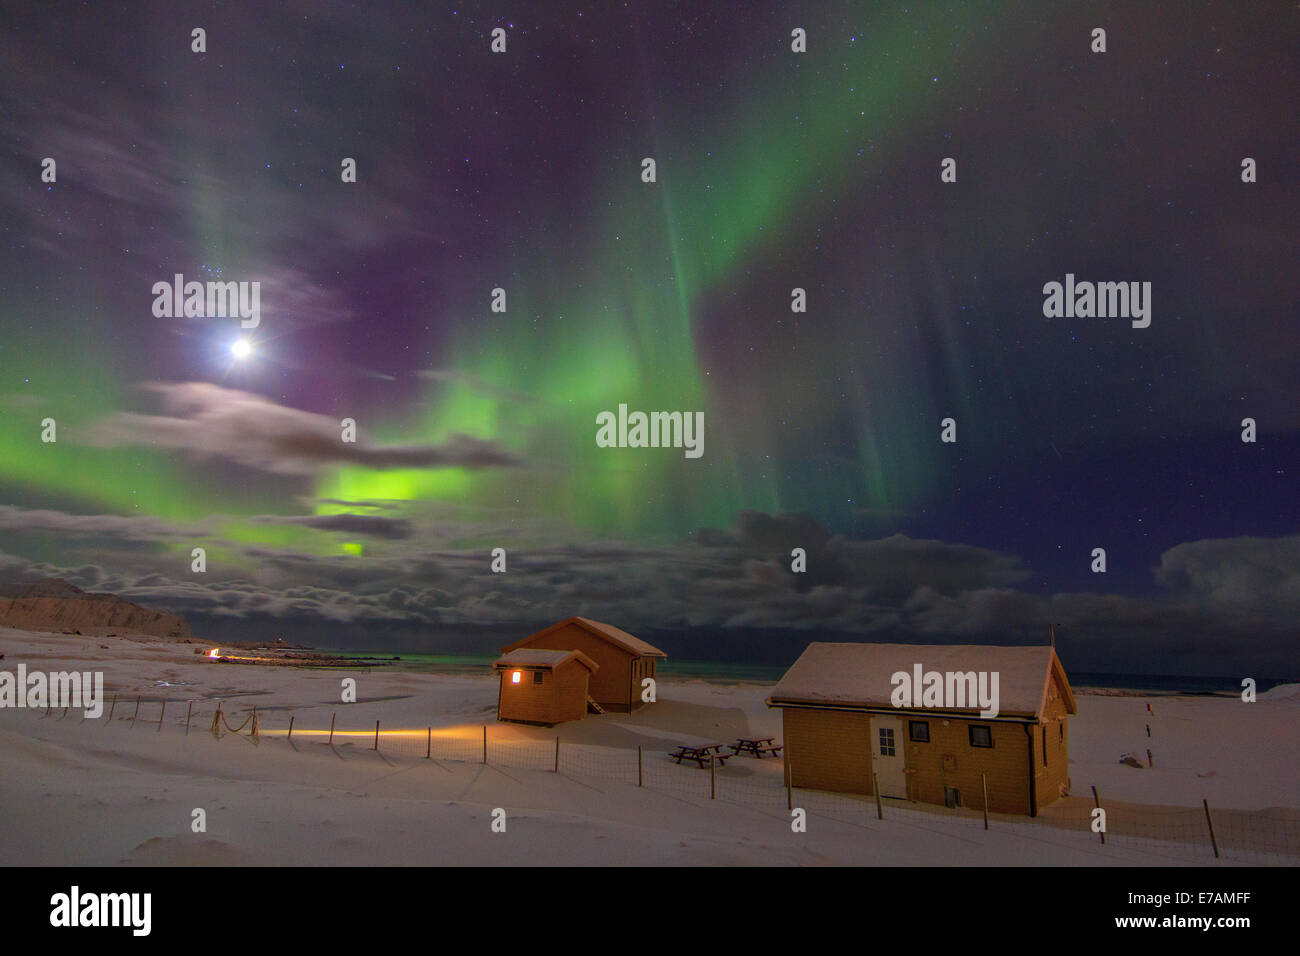 Northern lights on  the beach - Stock Image